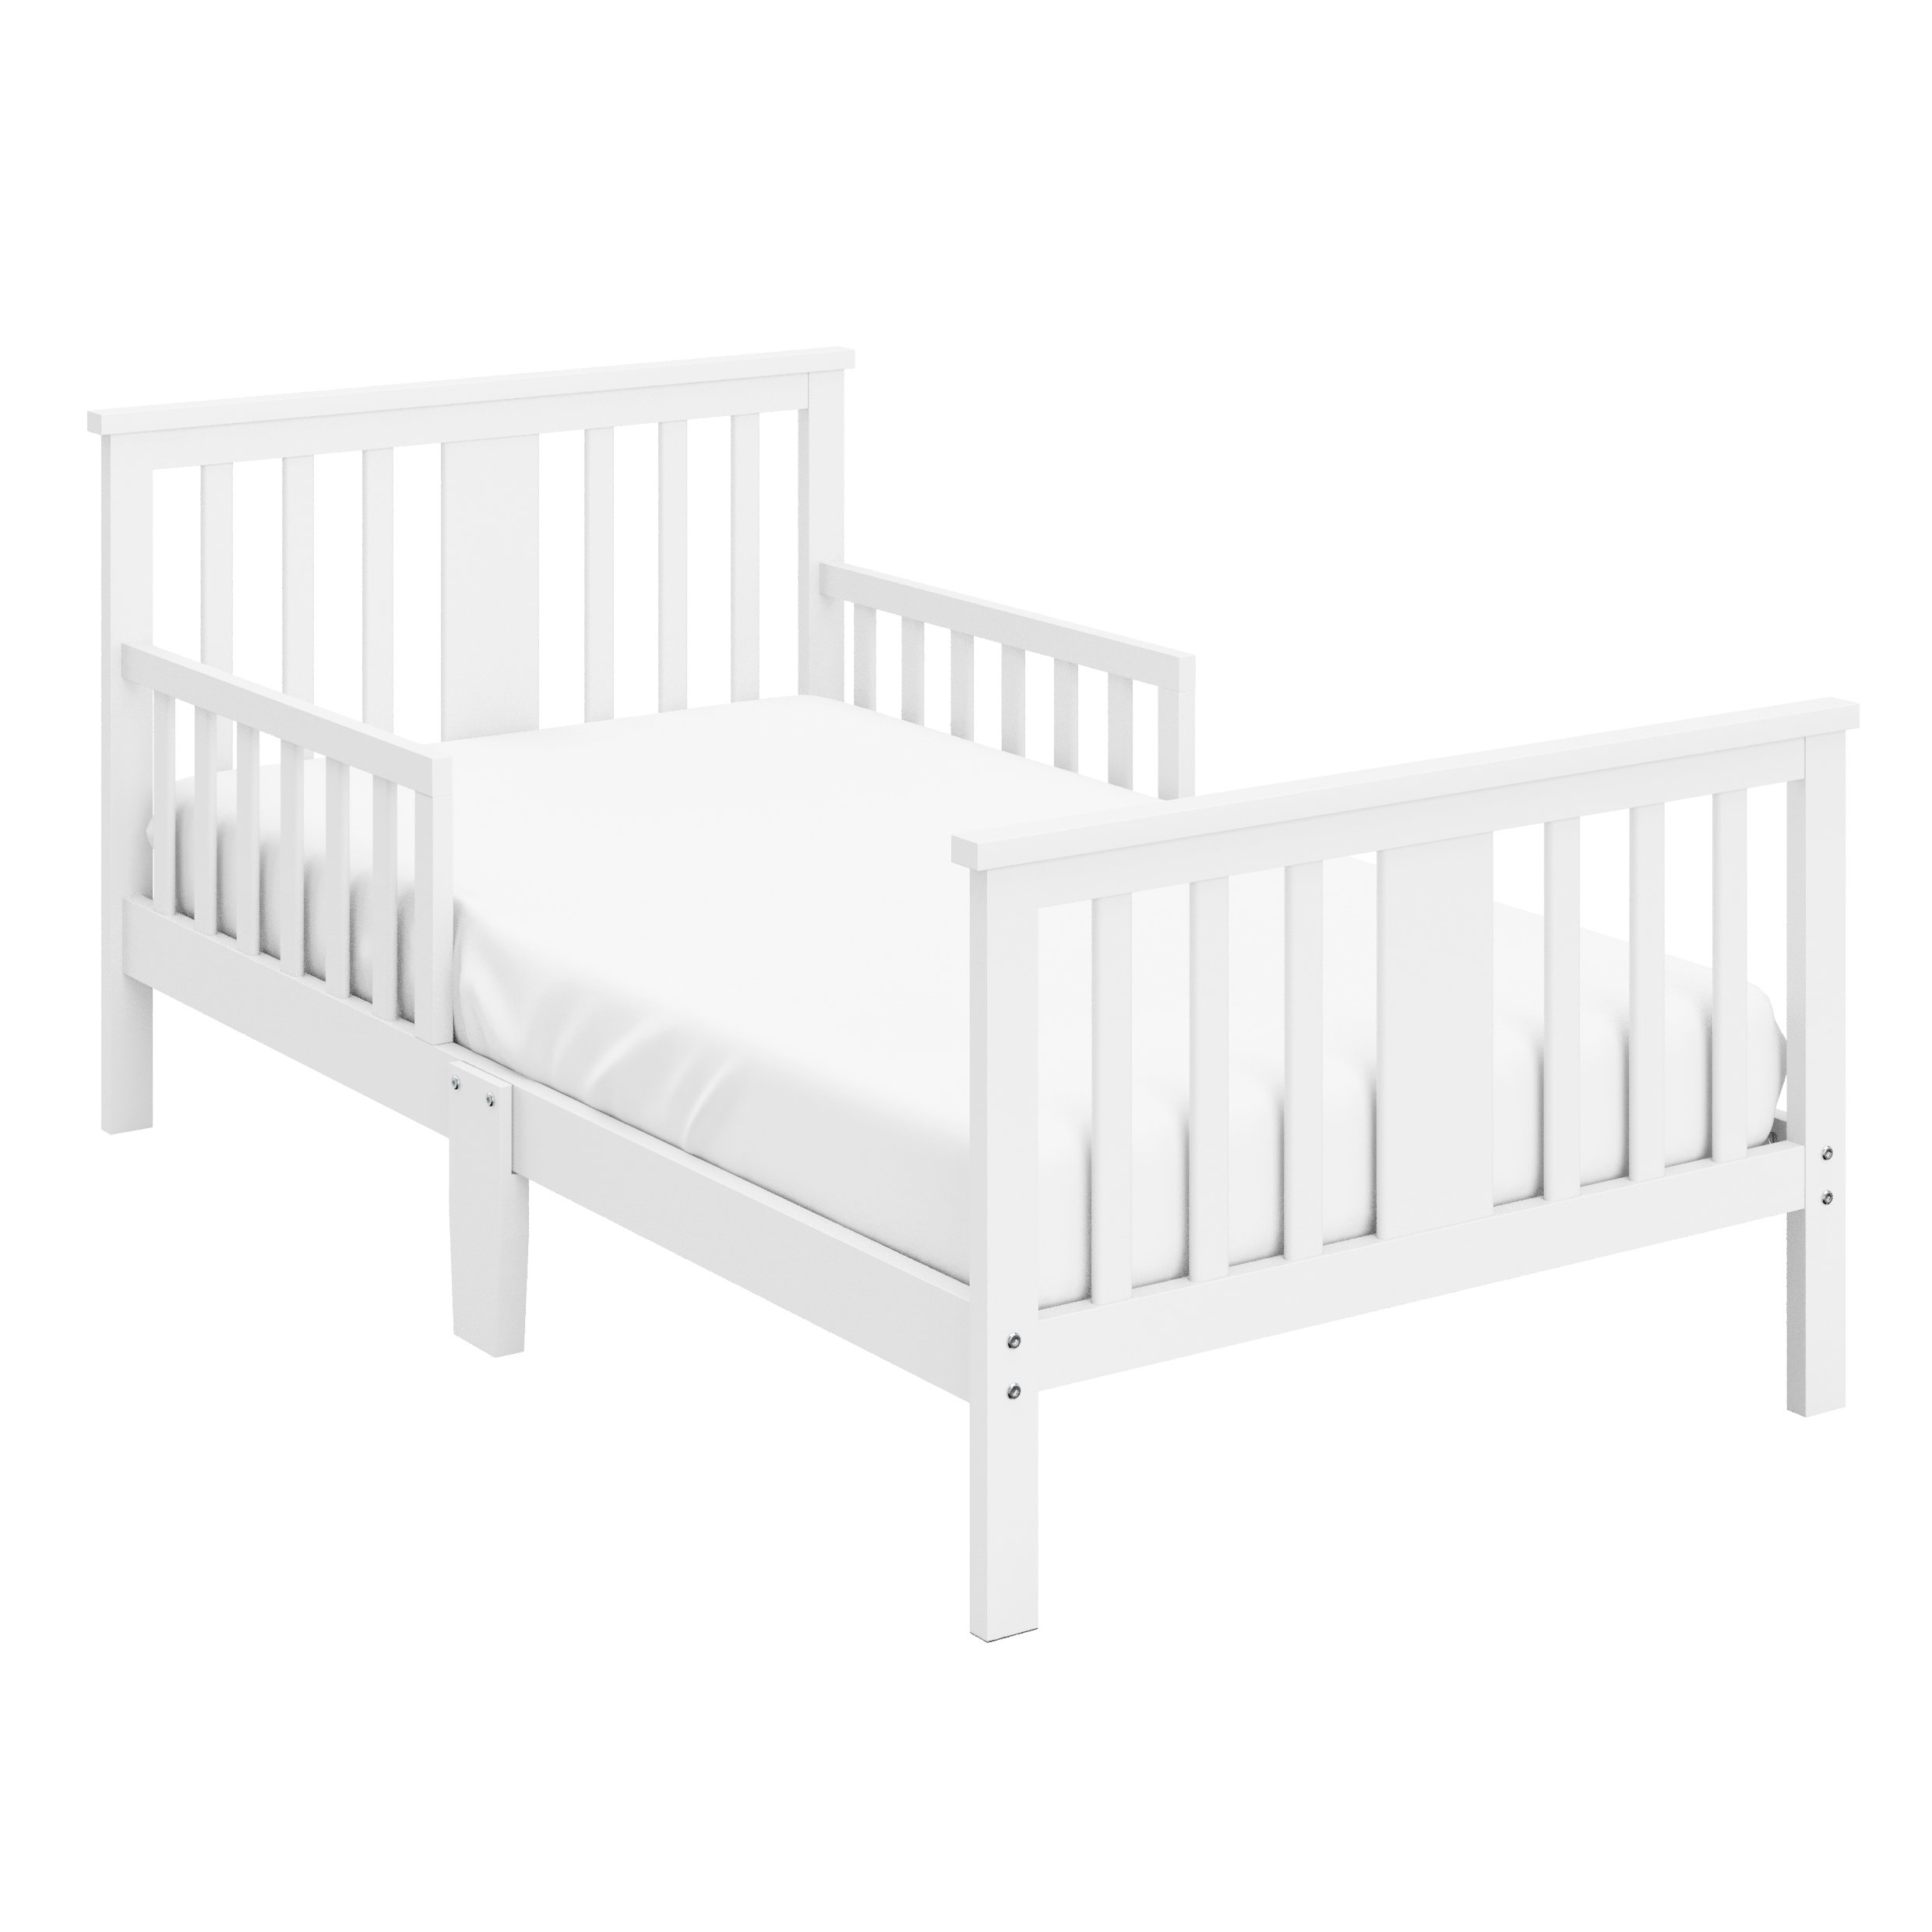 Storkcraft Mission Ridge Toddler Bed White, Fits Standard-Size Toddler Mattress (Not Included), Guardrail on Both Sides, Meets or Exceeds All Federal Safety Standards, Pine & Composite Construction